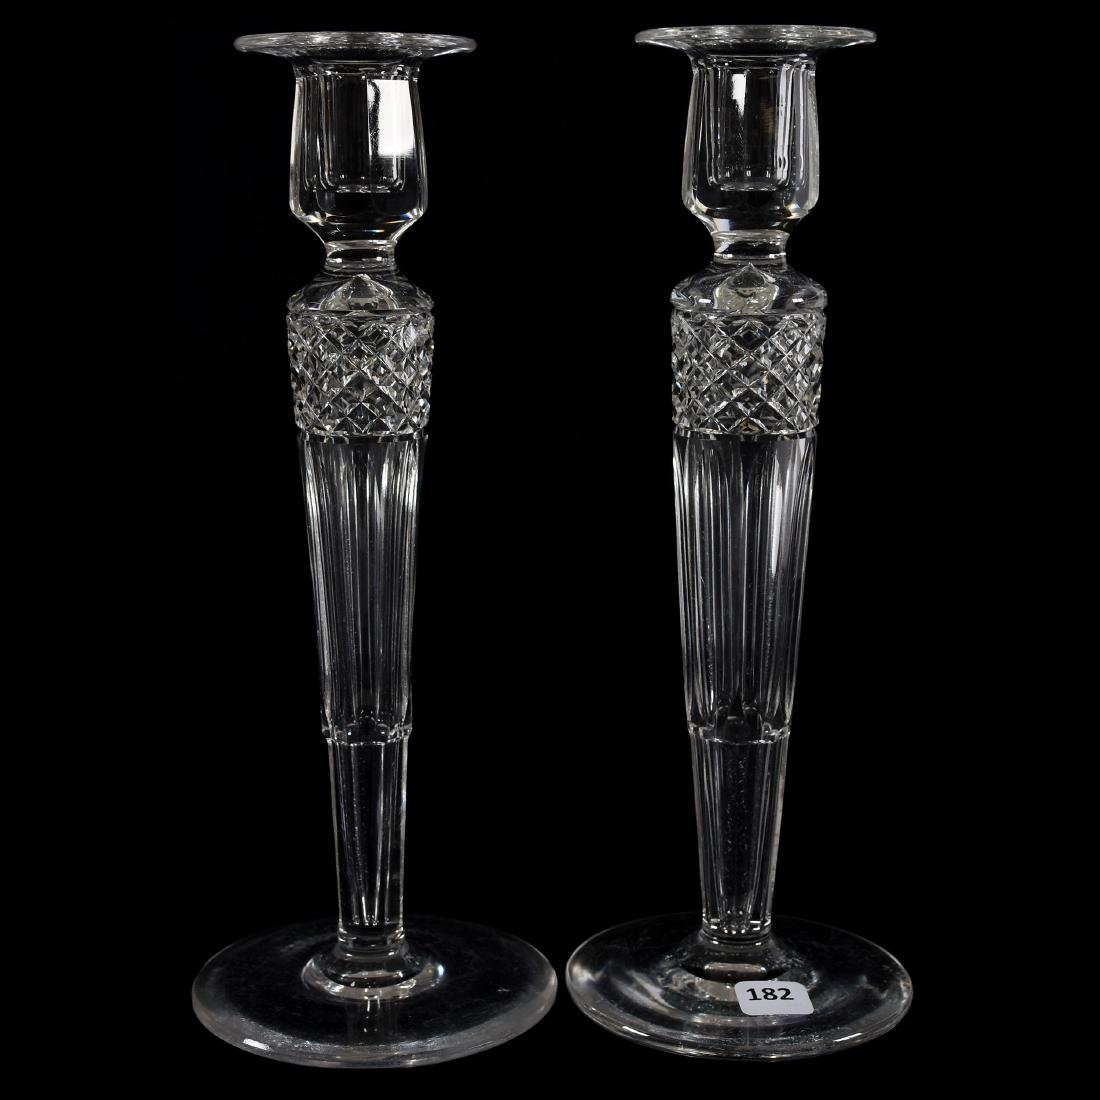 Pair Candlesticks, Signed Hawkes, Hollow Stem Diamond